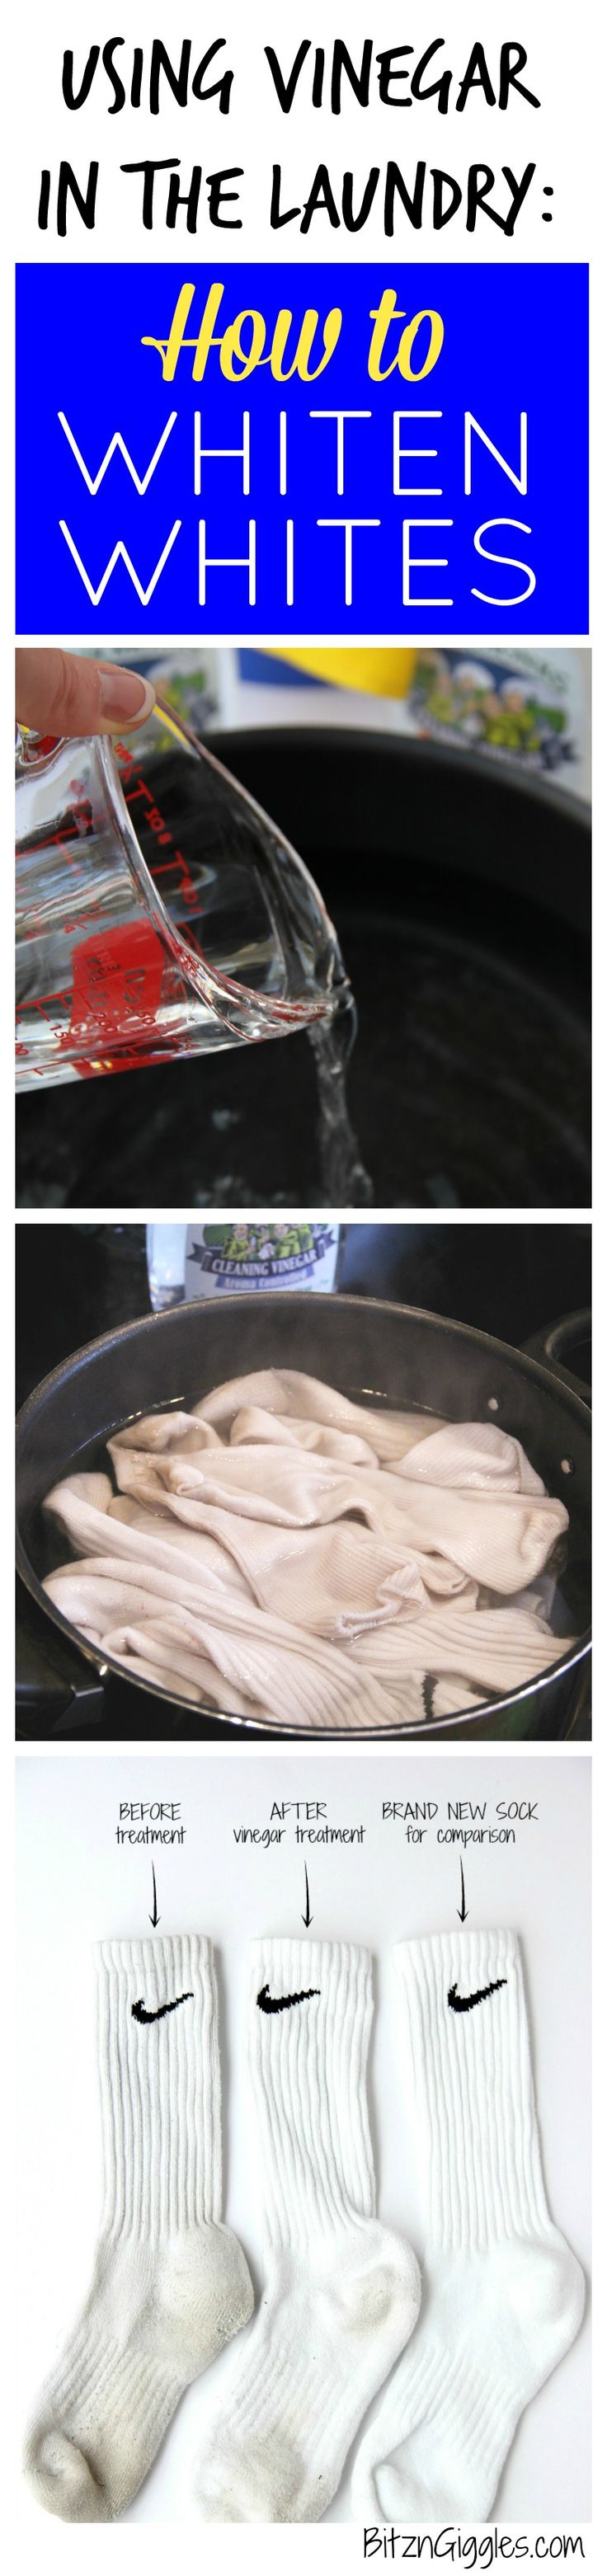 Using Vinegar in the Laundry: How to Whiten Whites - Tutorial on using a natural cleaner to brighten dingy white socks and clothes! It really works! #FourMonksClean AD